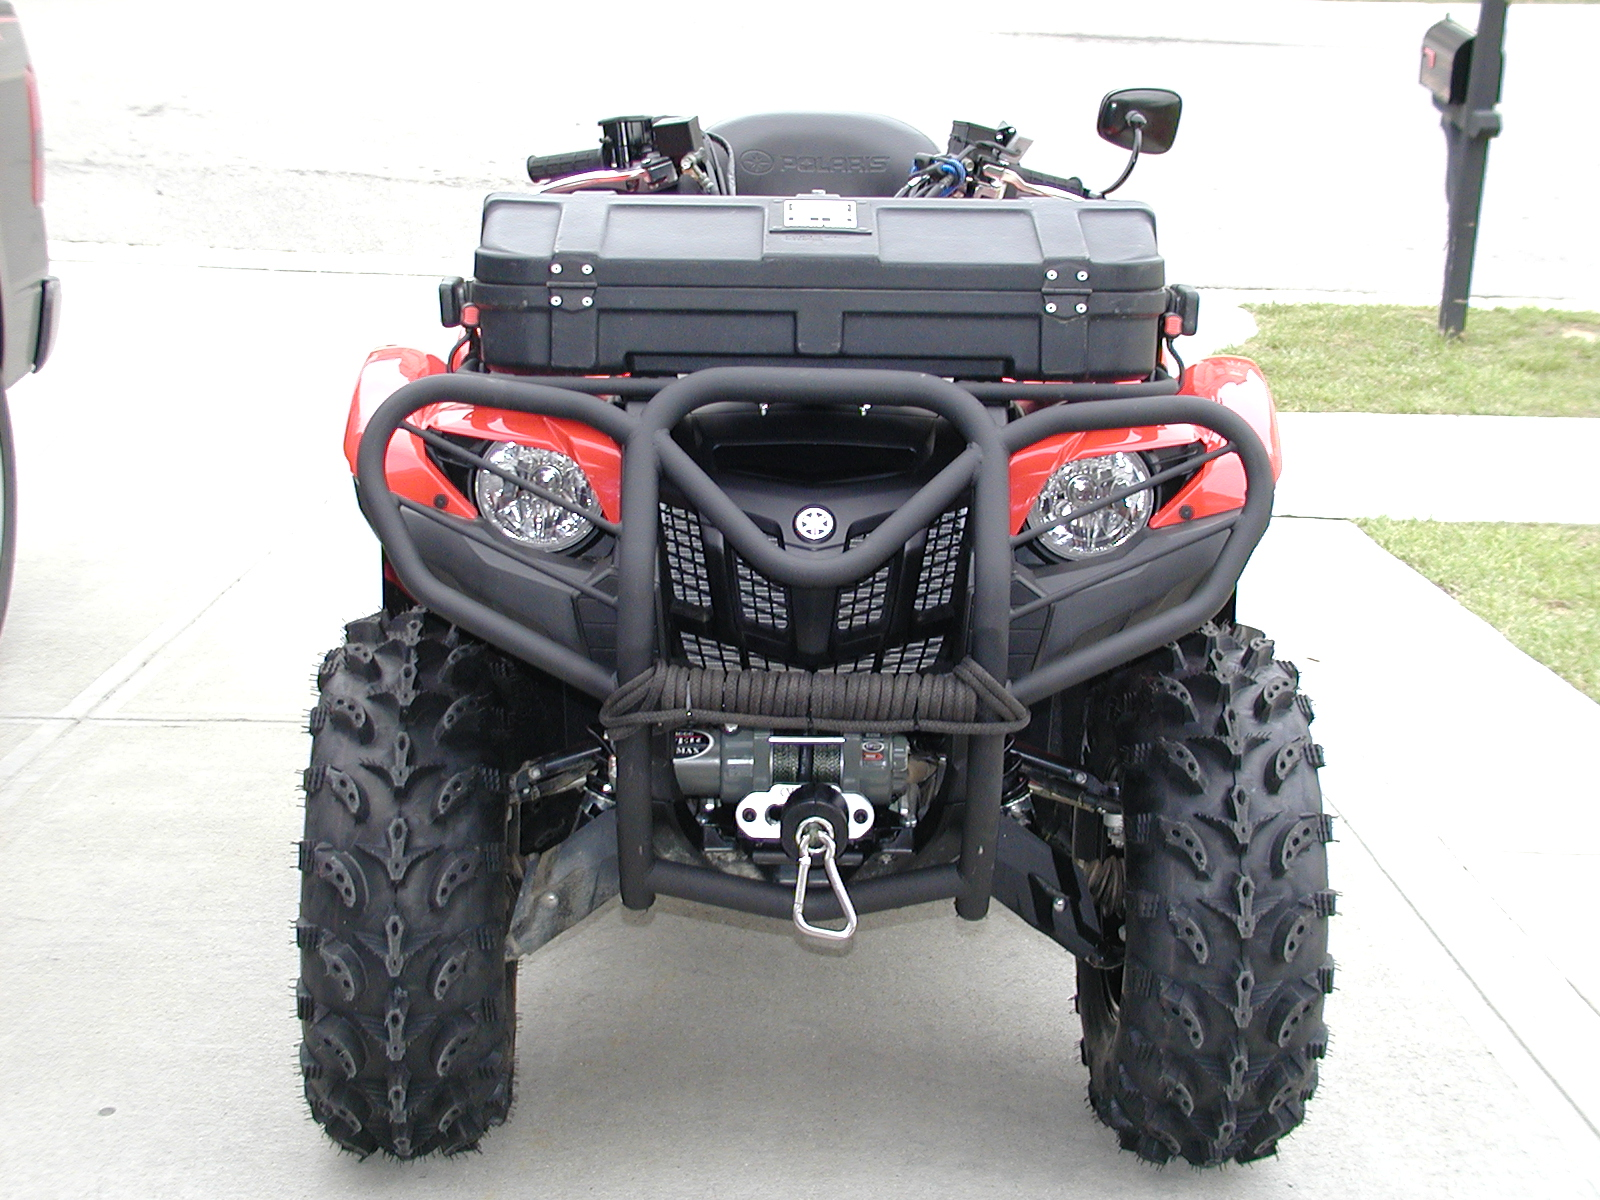 Overheating grizzly 700 yamaha grizzly atv forum click image for larger version name p1010108g views 5561 size 9120 sciox Image collections